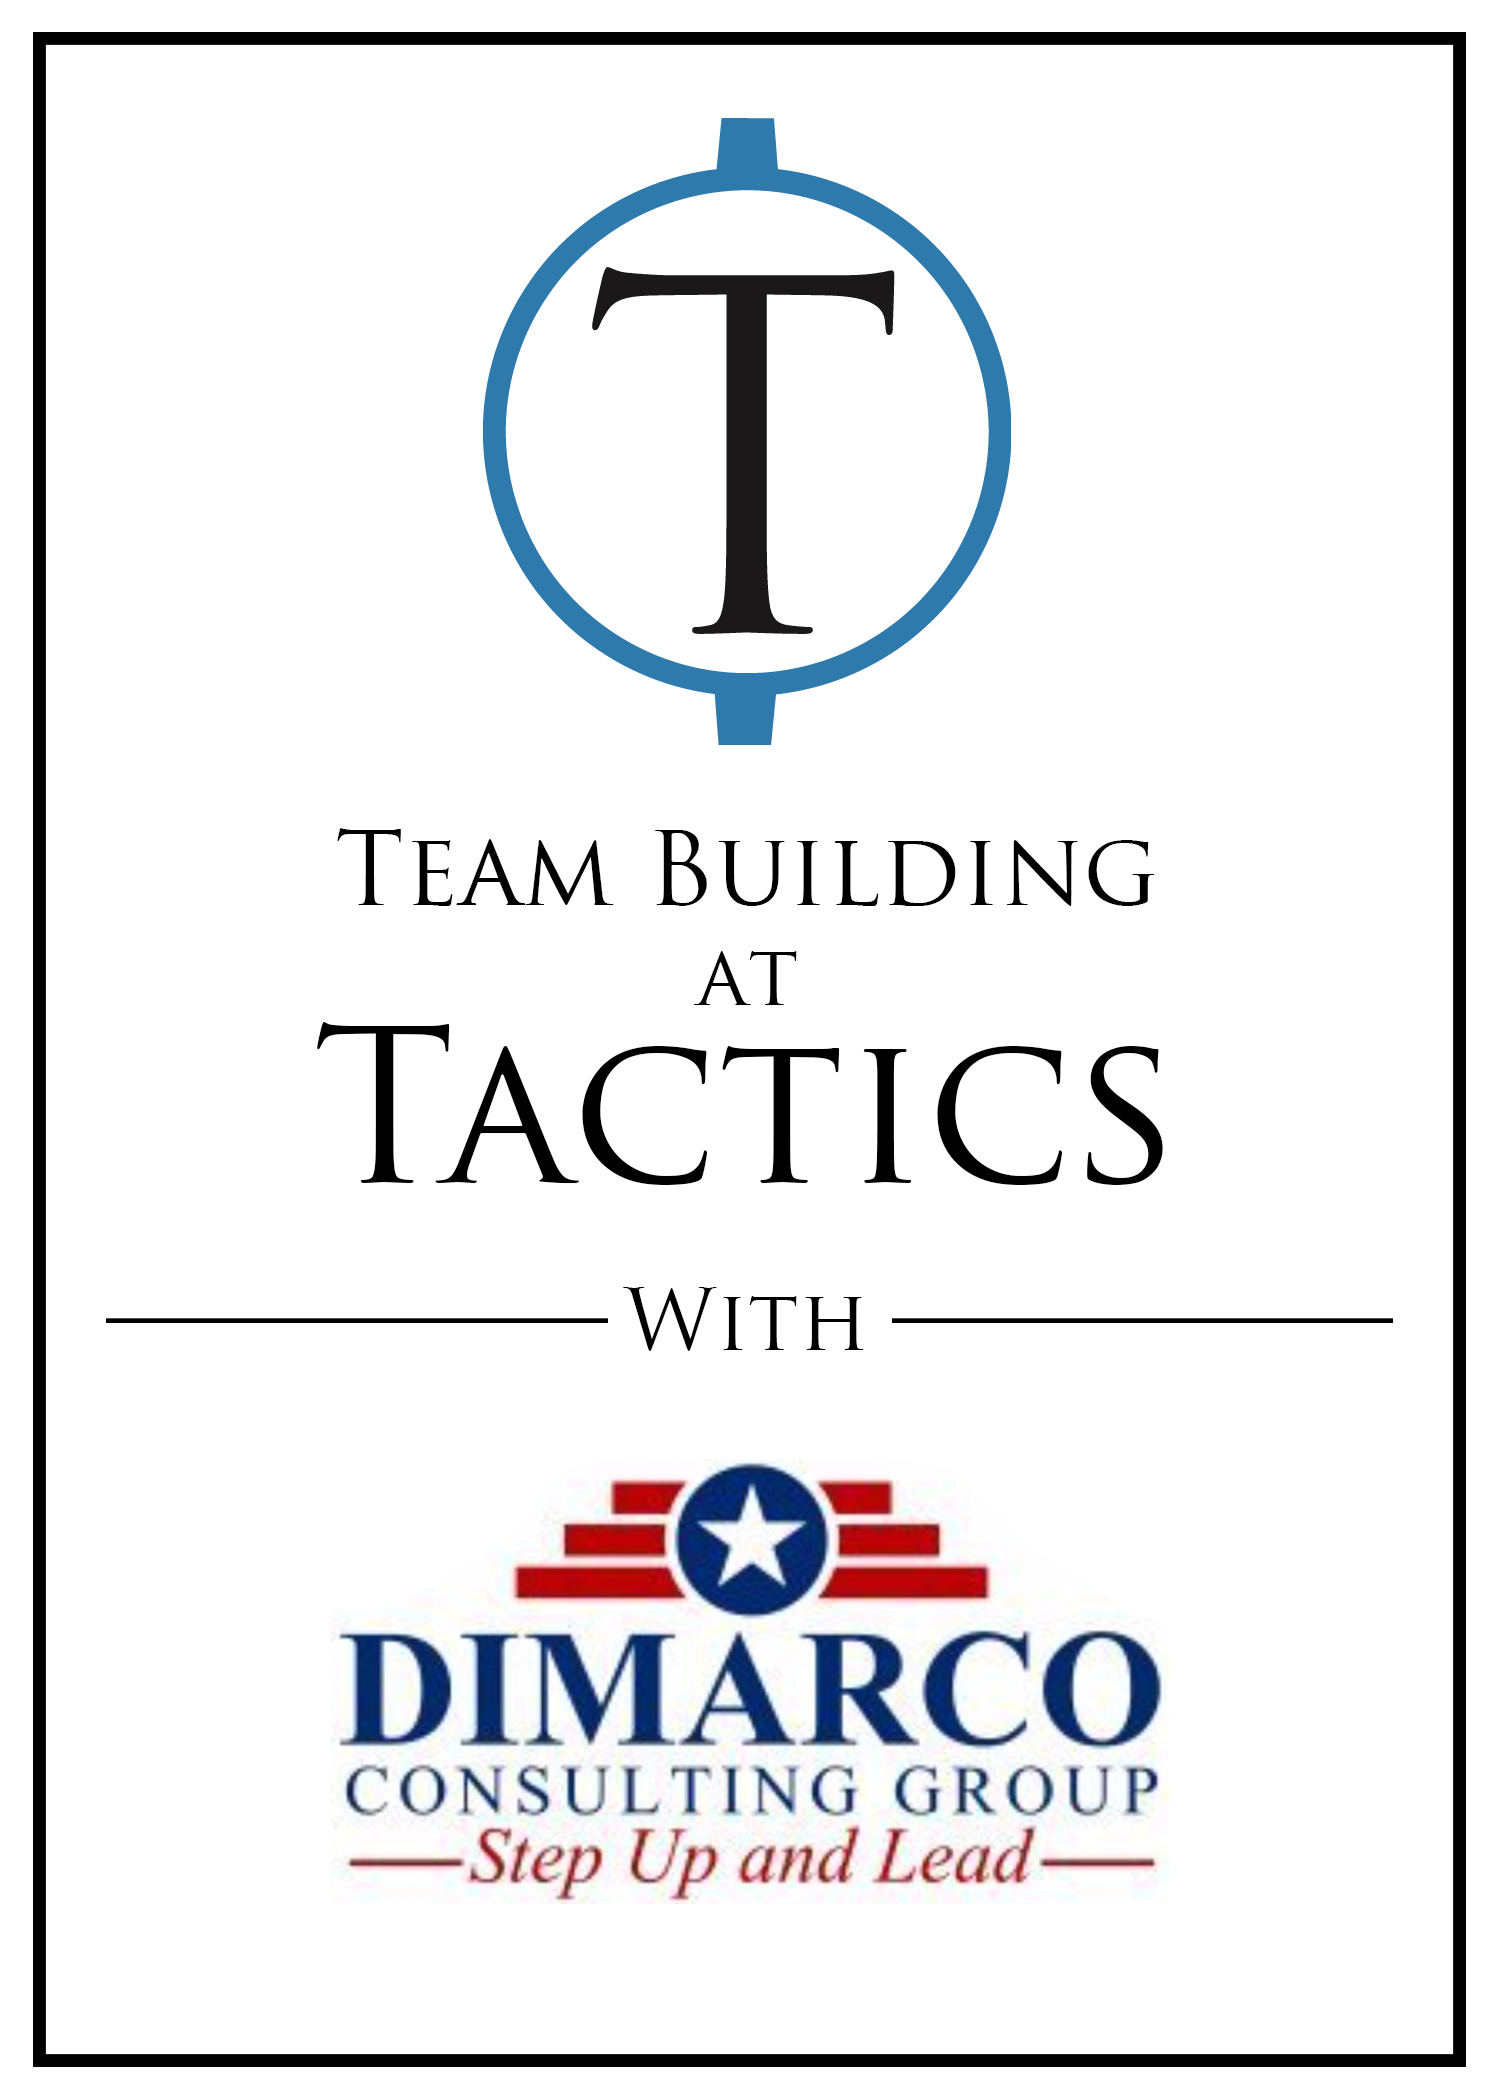 Team Building with Dimarco.png